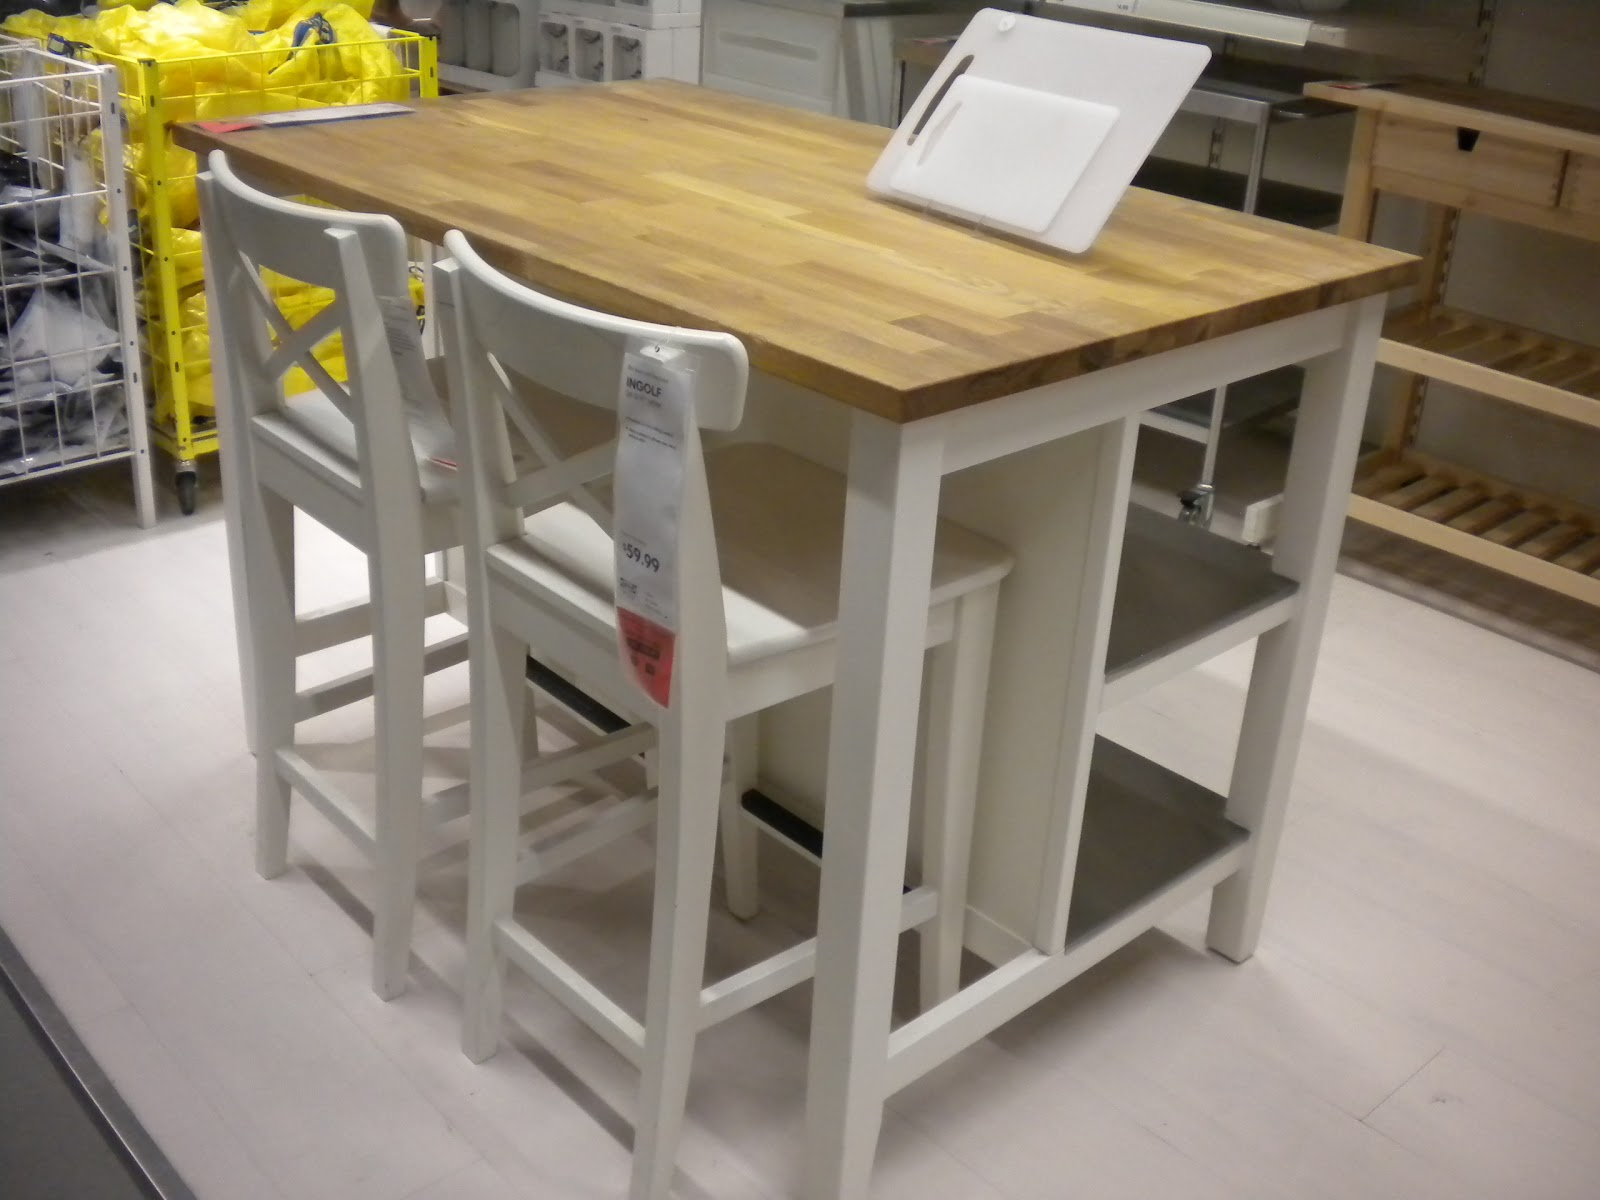 Ikea Stenstorp Kitchen Island Table ~ ikea island  as craft table  Simplify & Organize  Pinterest